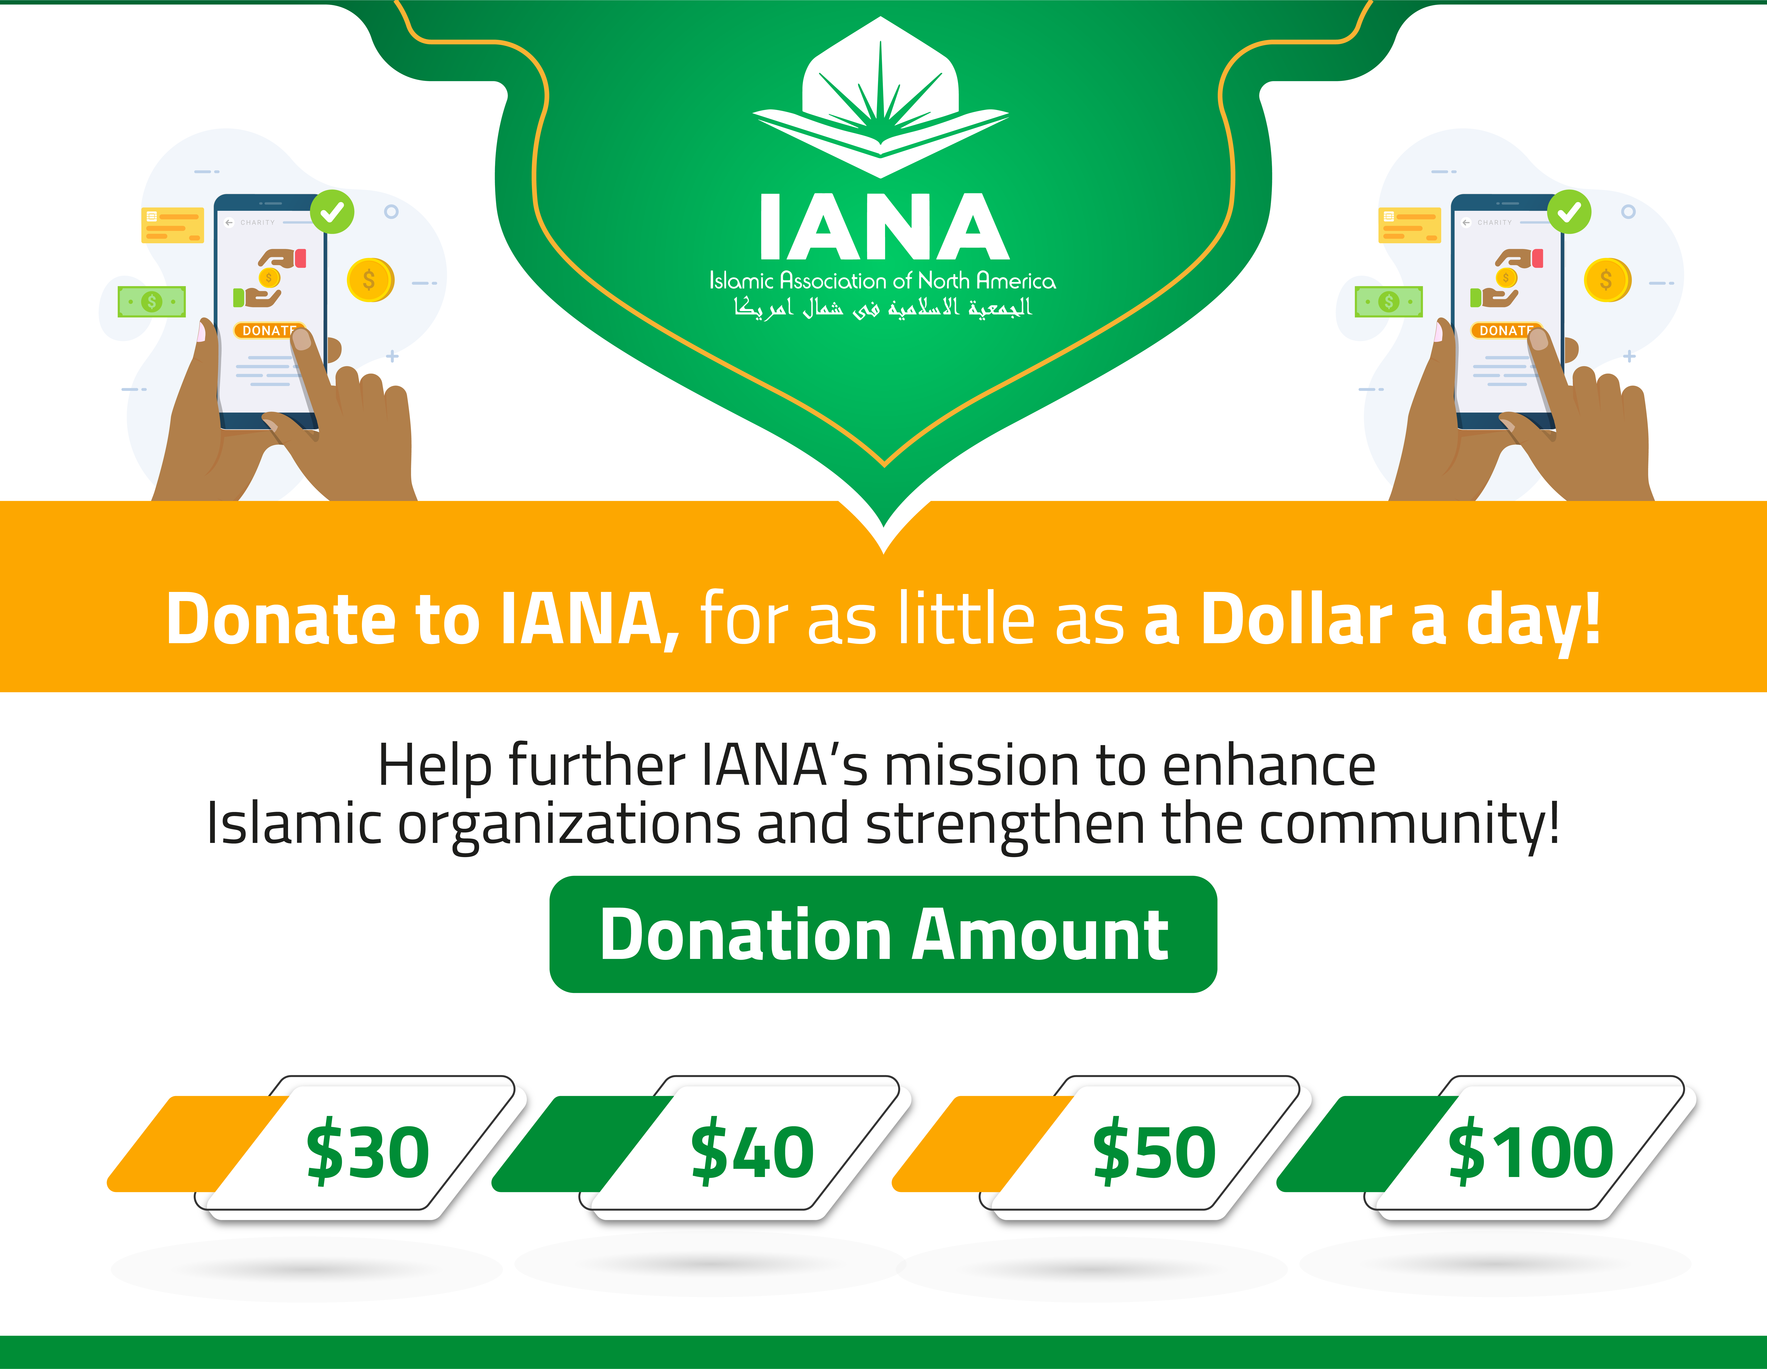 Donate to IANA, for as little as a dollar a day! image